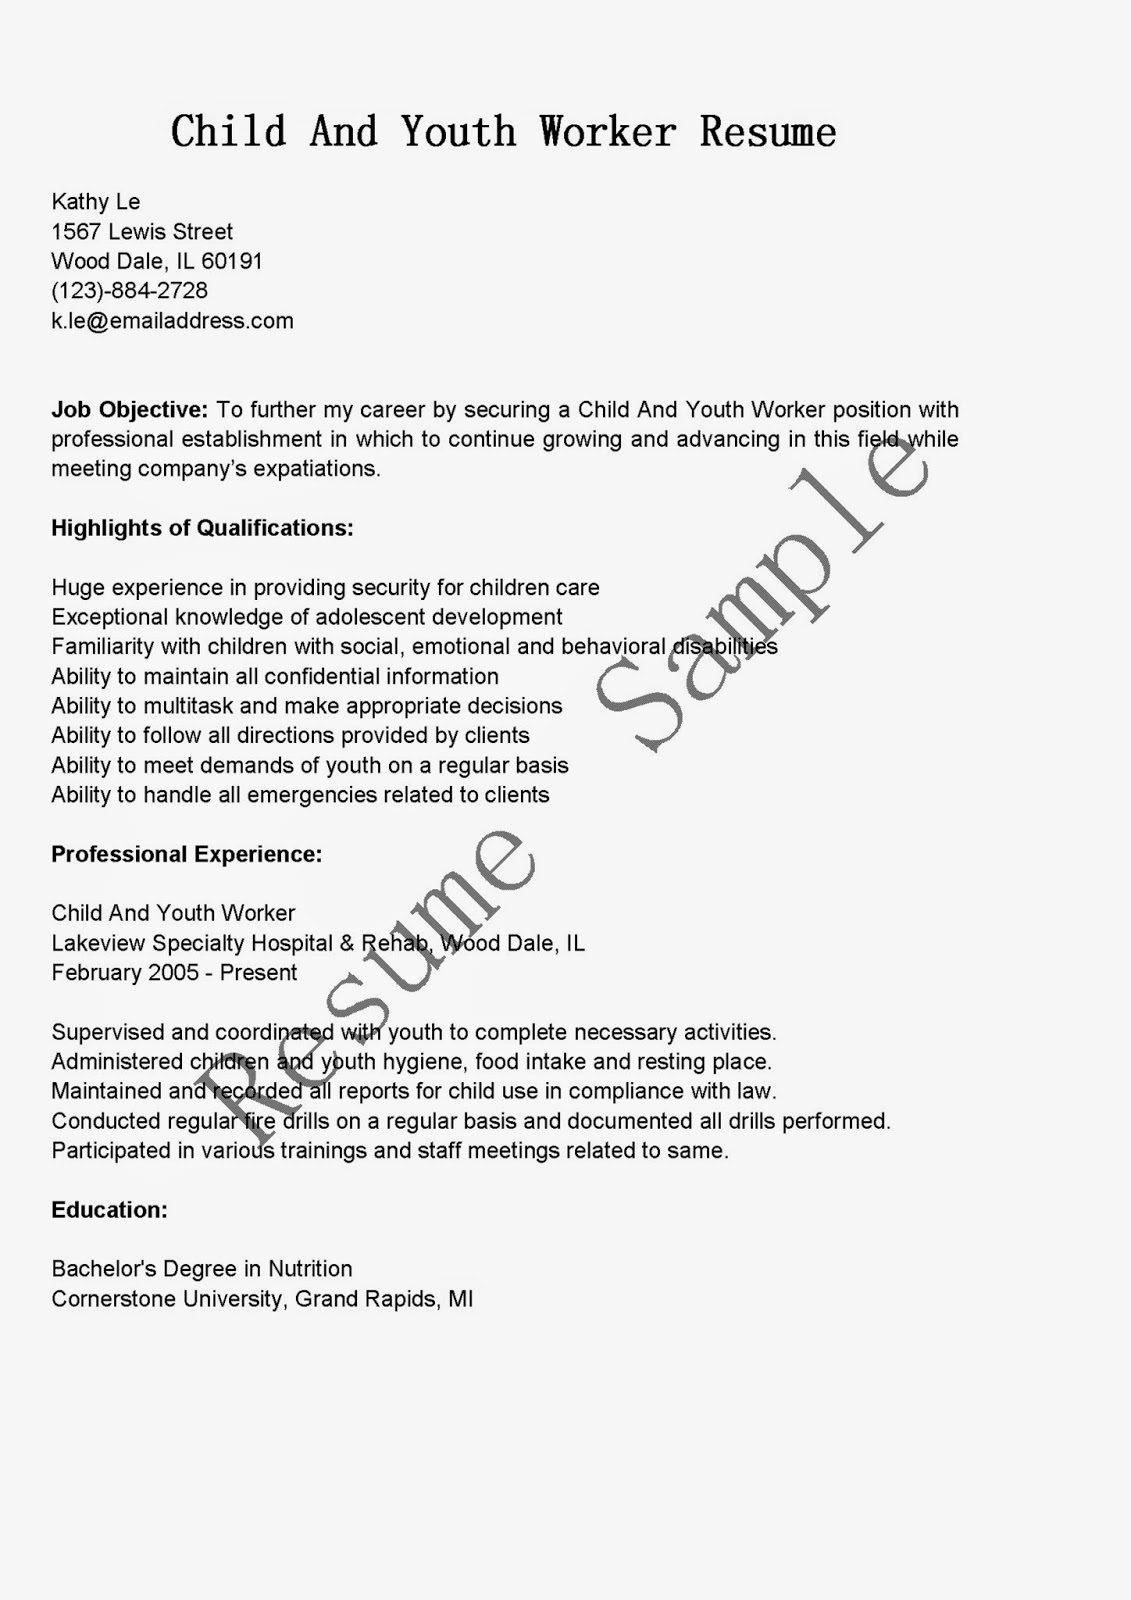 child and youth worker resume sample